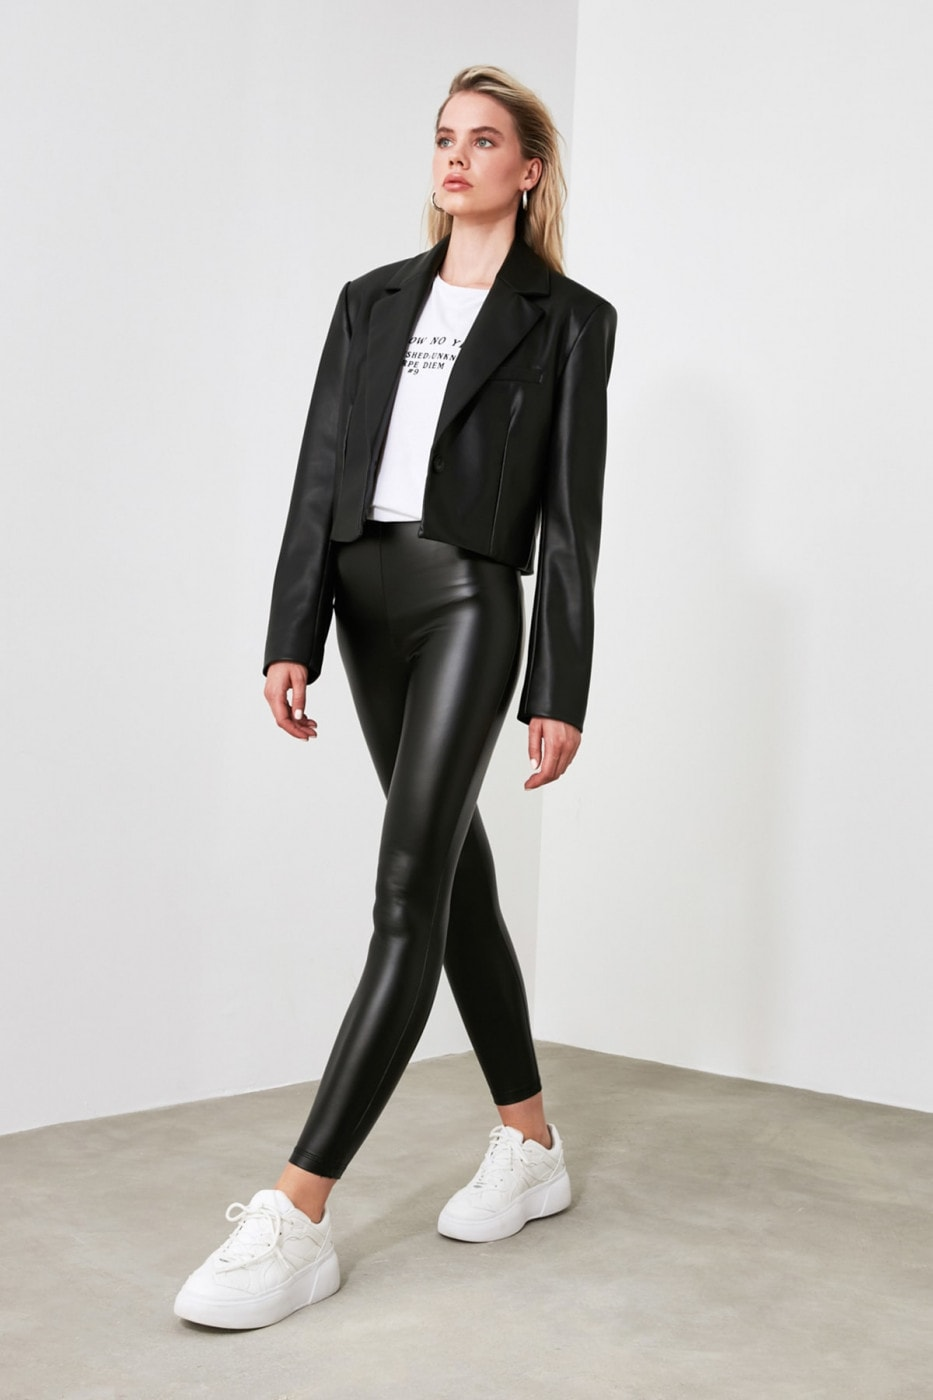 Trendyol Black Leather-Looking Charitred Knitted Leggings